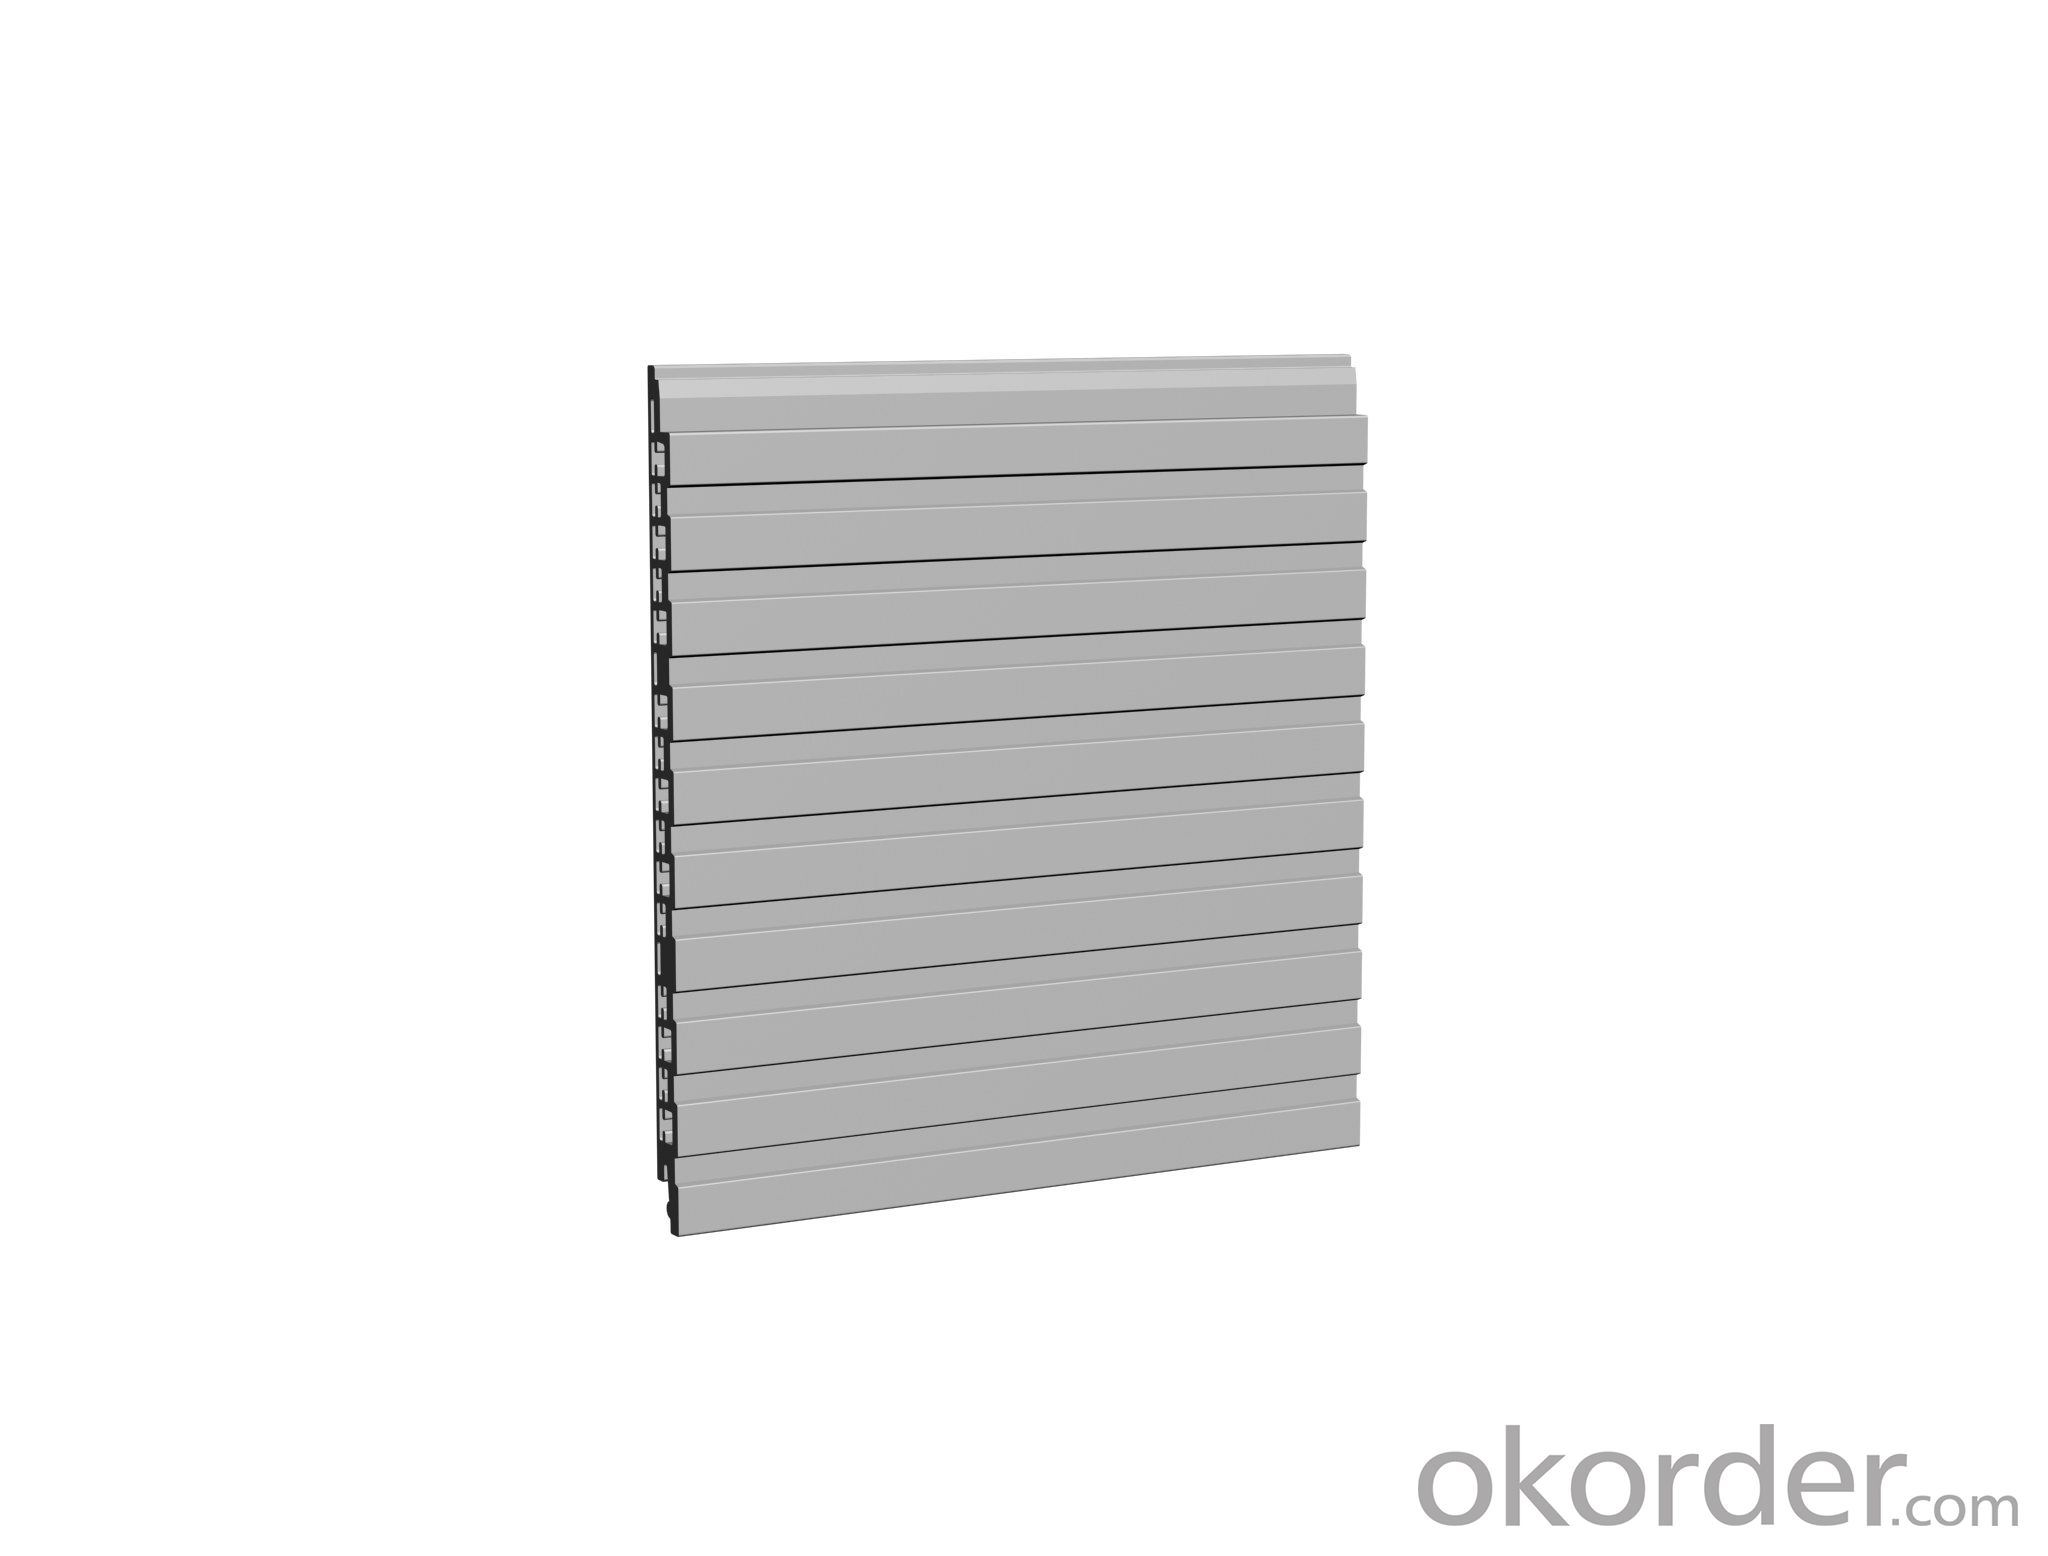 Morden Exterior wall Fiber Cement Siding Board/Cladding K15-0LA